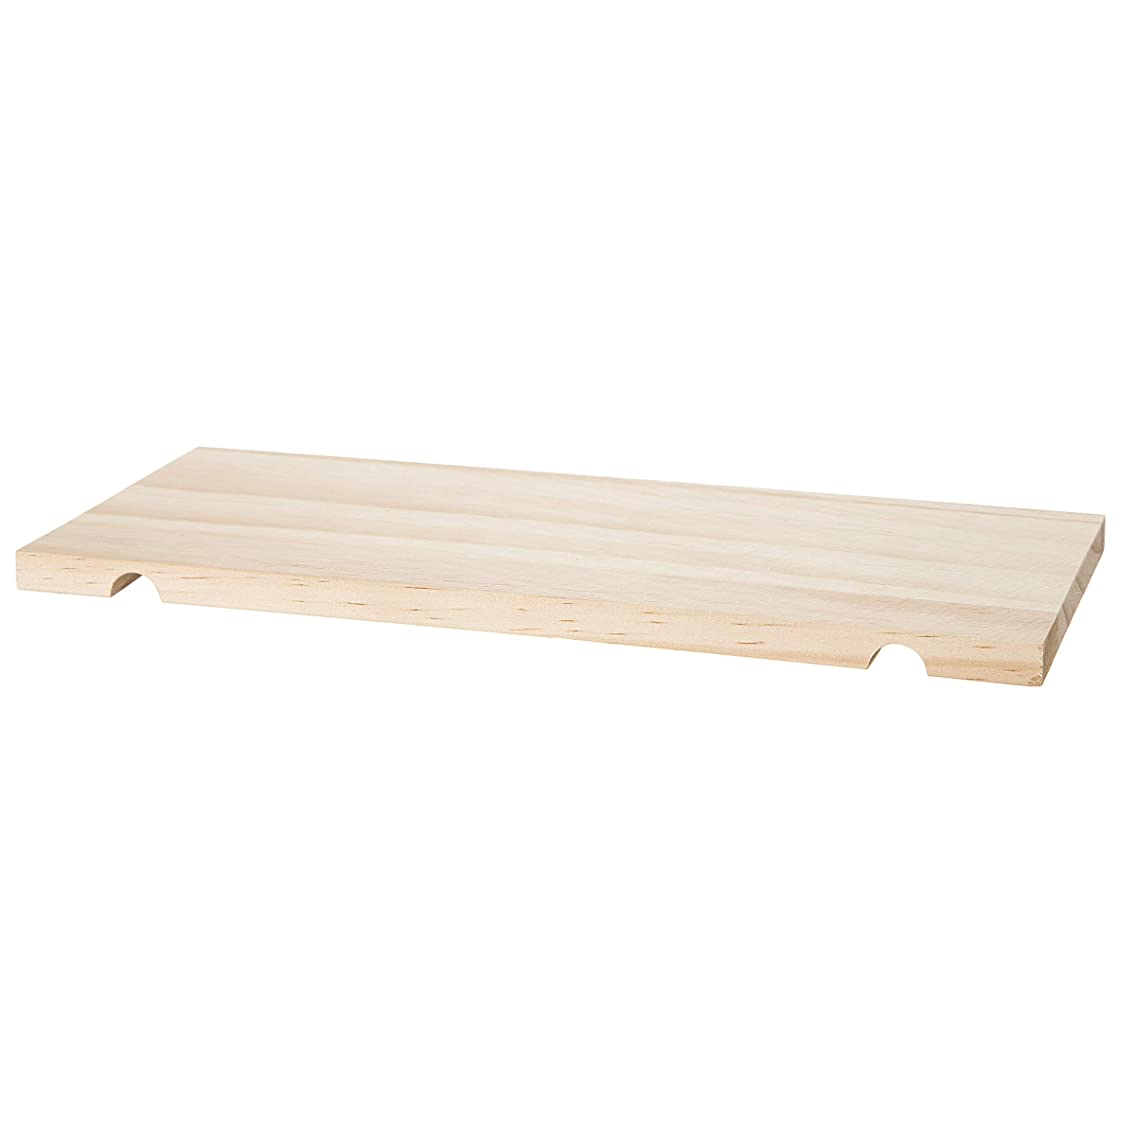 Darice 30053058 System: Wooden Pegboard Shelf, Unfinished, 5 x 12 Inches, Natural